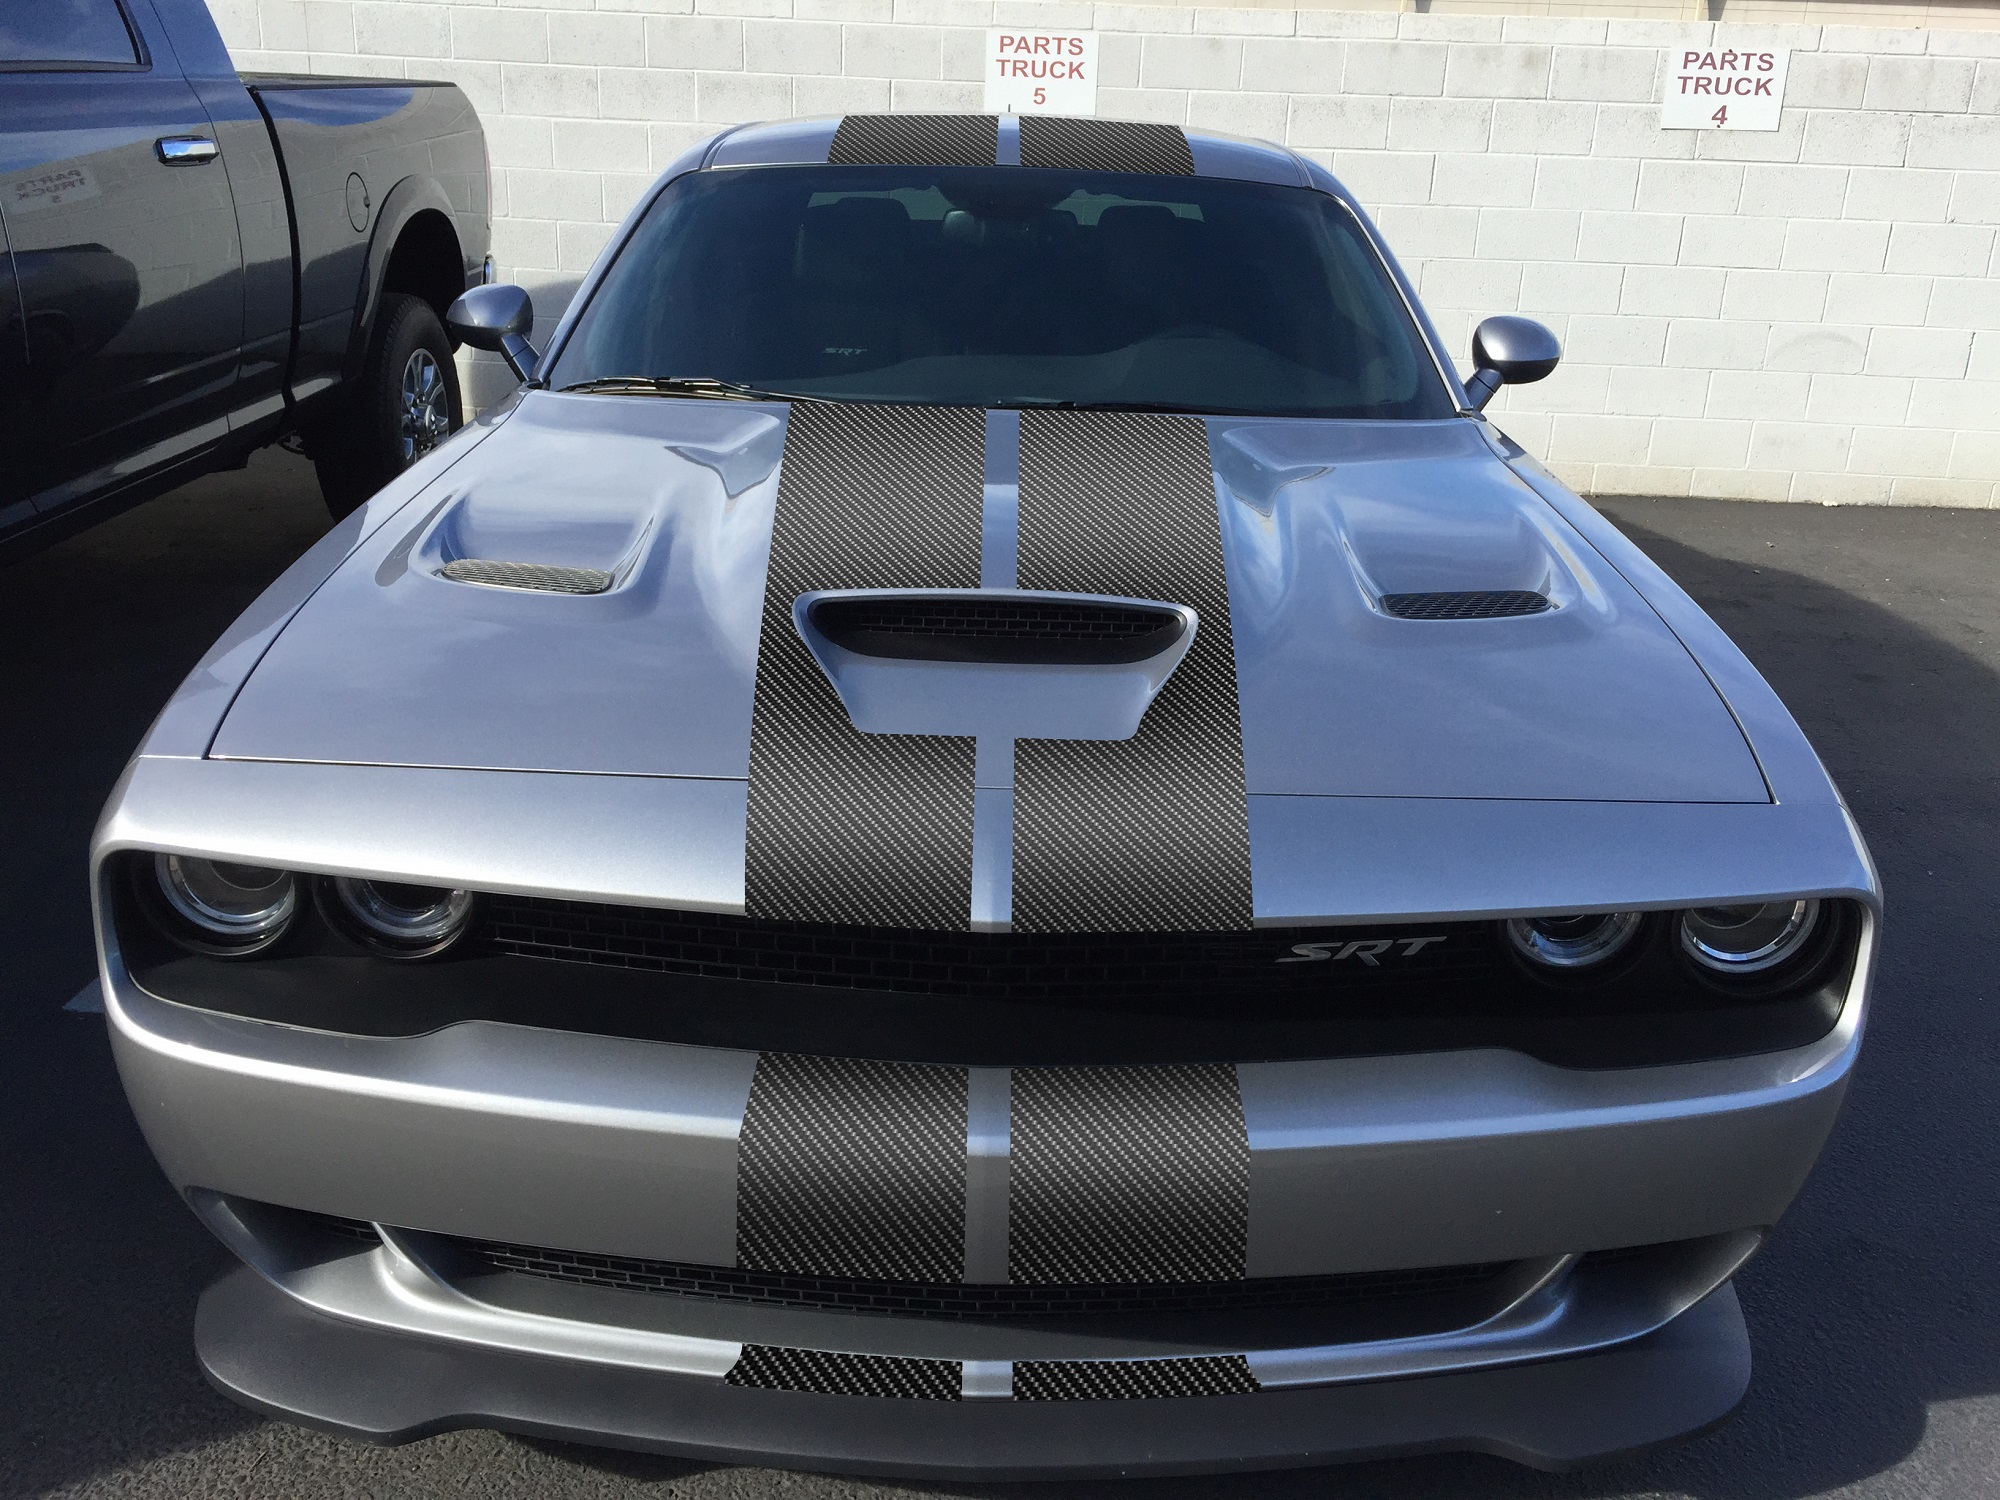 hellcat stripe rally w-out pin stripe.jpg